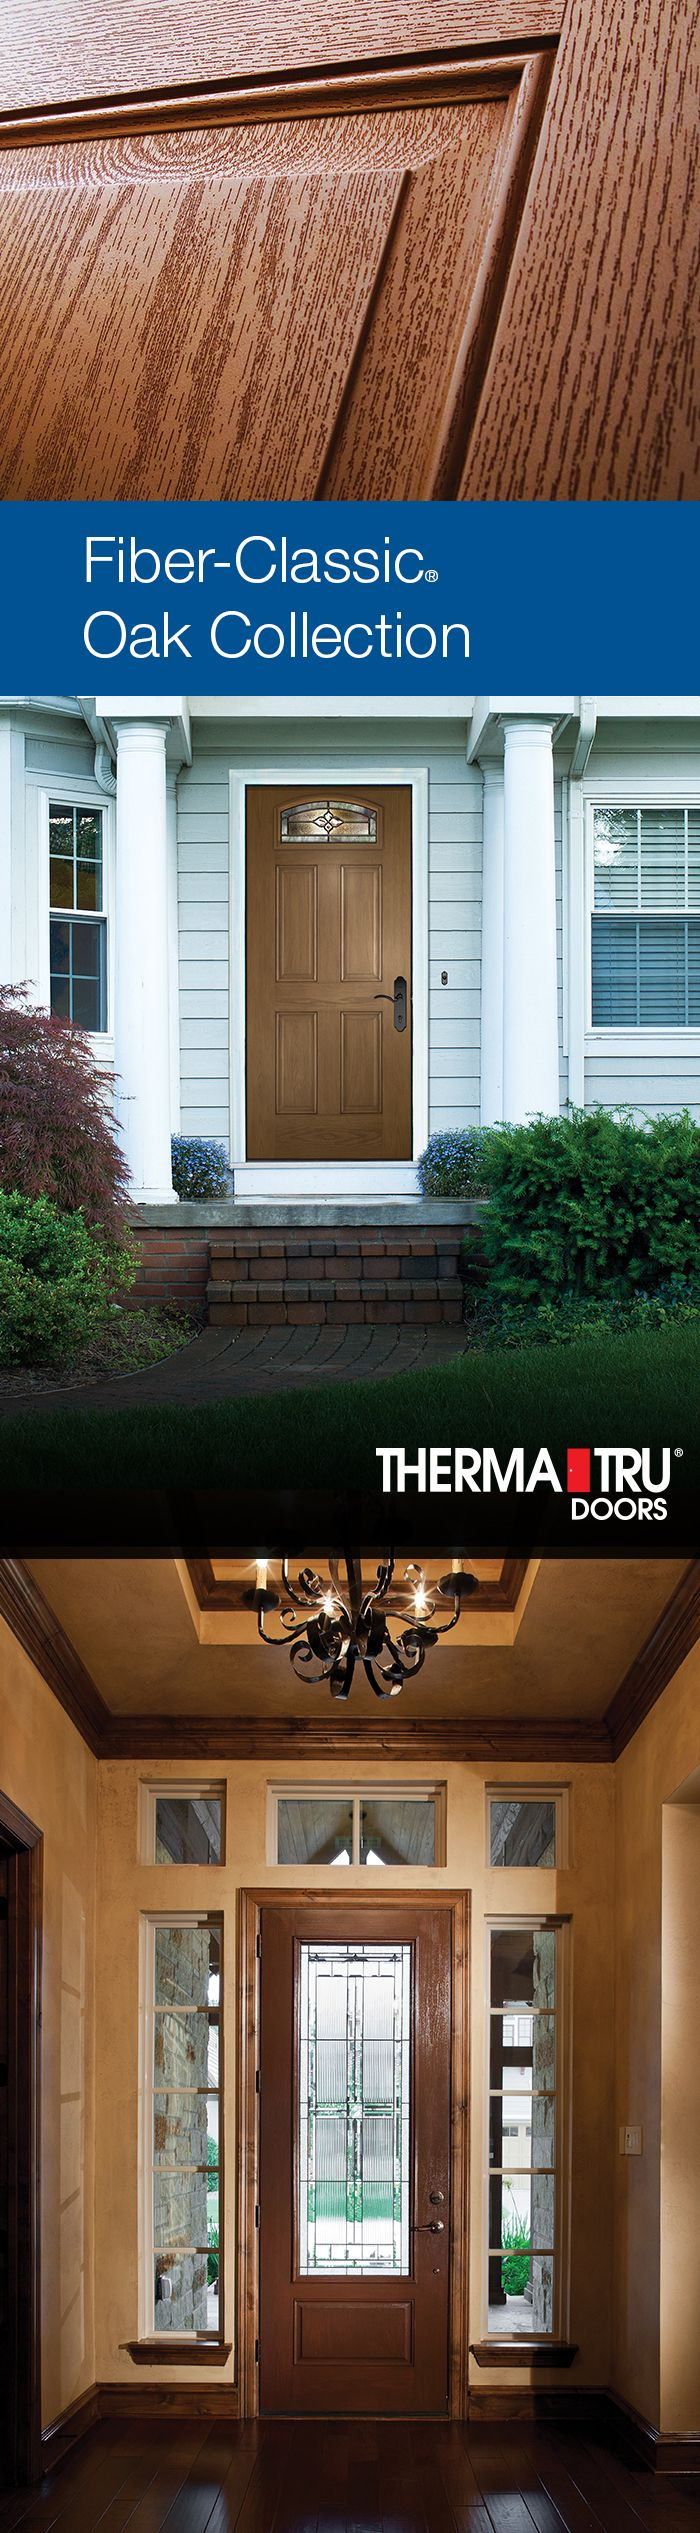 The Fiber-Classic Oak Collection features doors with the warm look and feel of Oak graining. Therma Tru Doors